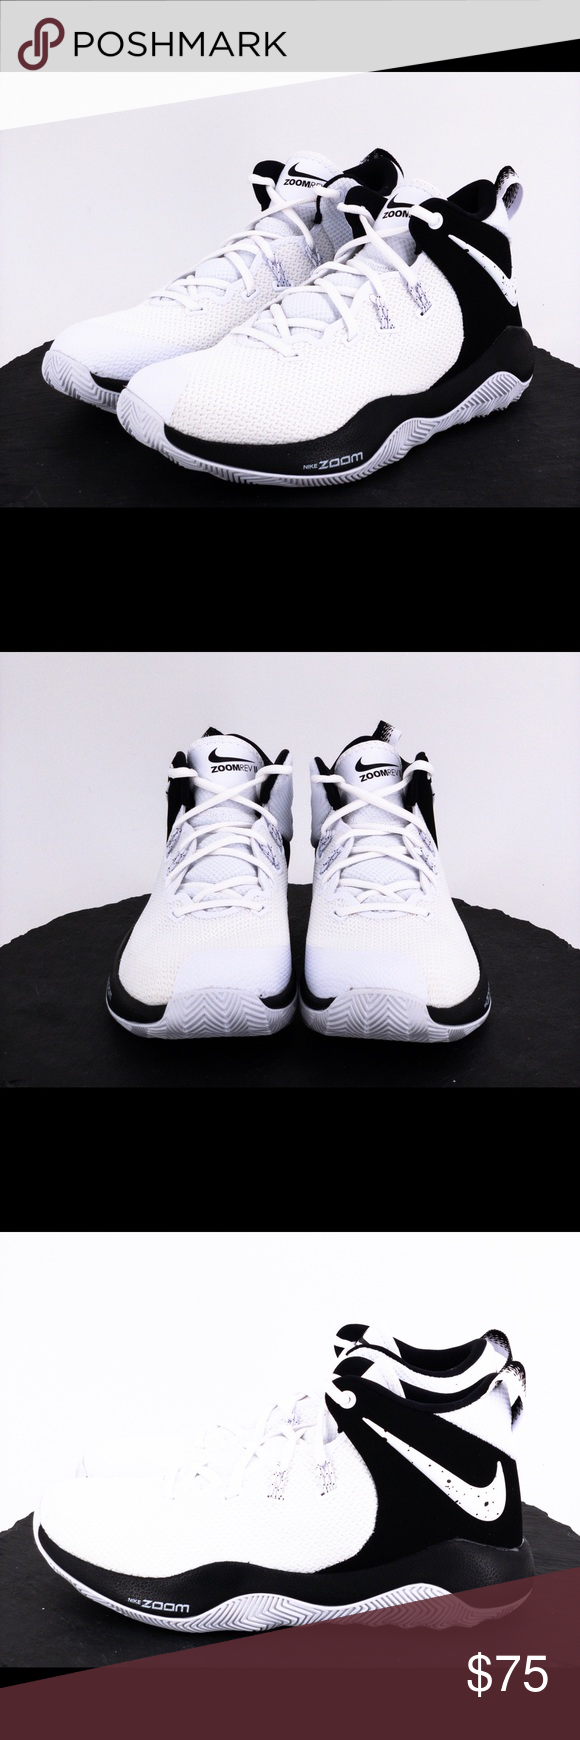 e2de5344b5325 Nike Zoom Rev II mens basketball shoes size 7.5 The product you are  purchasing is a